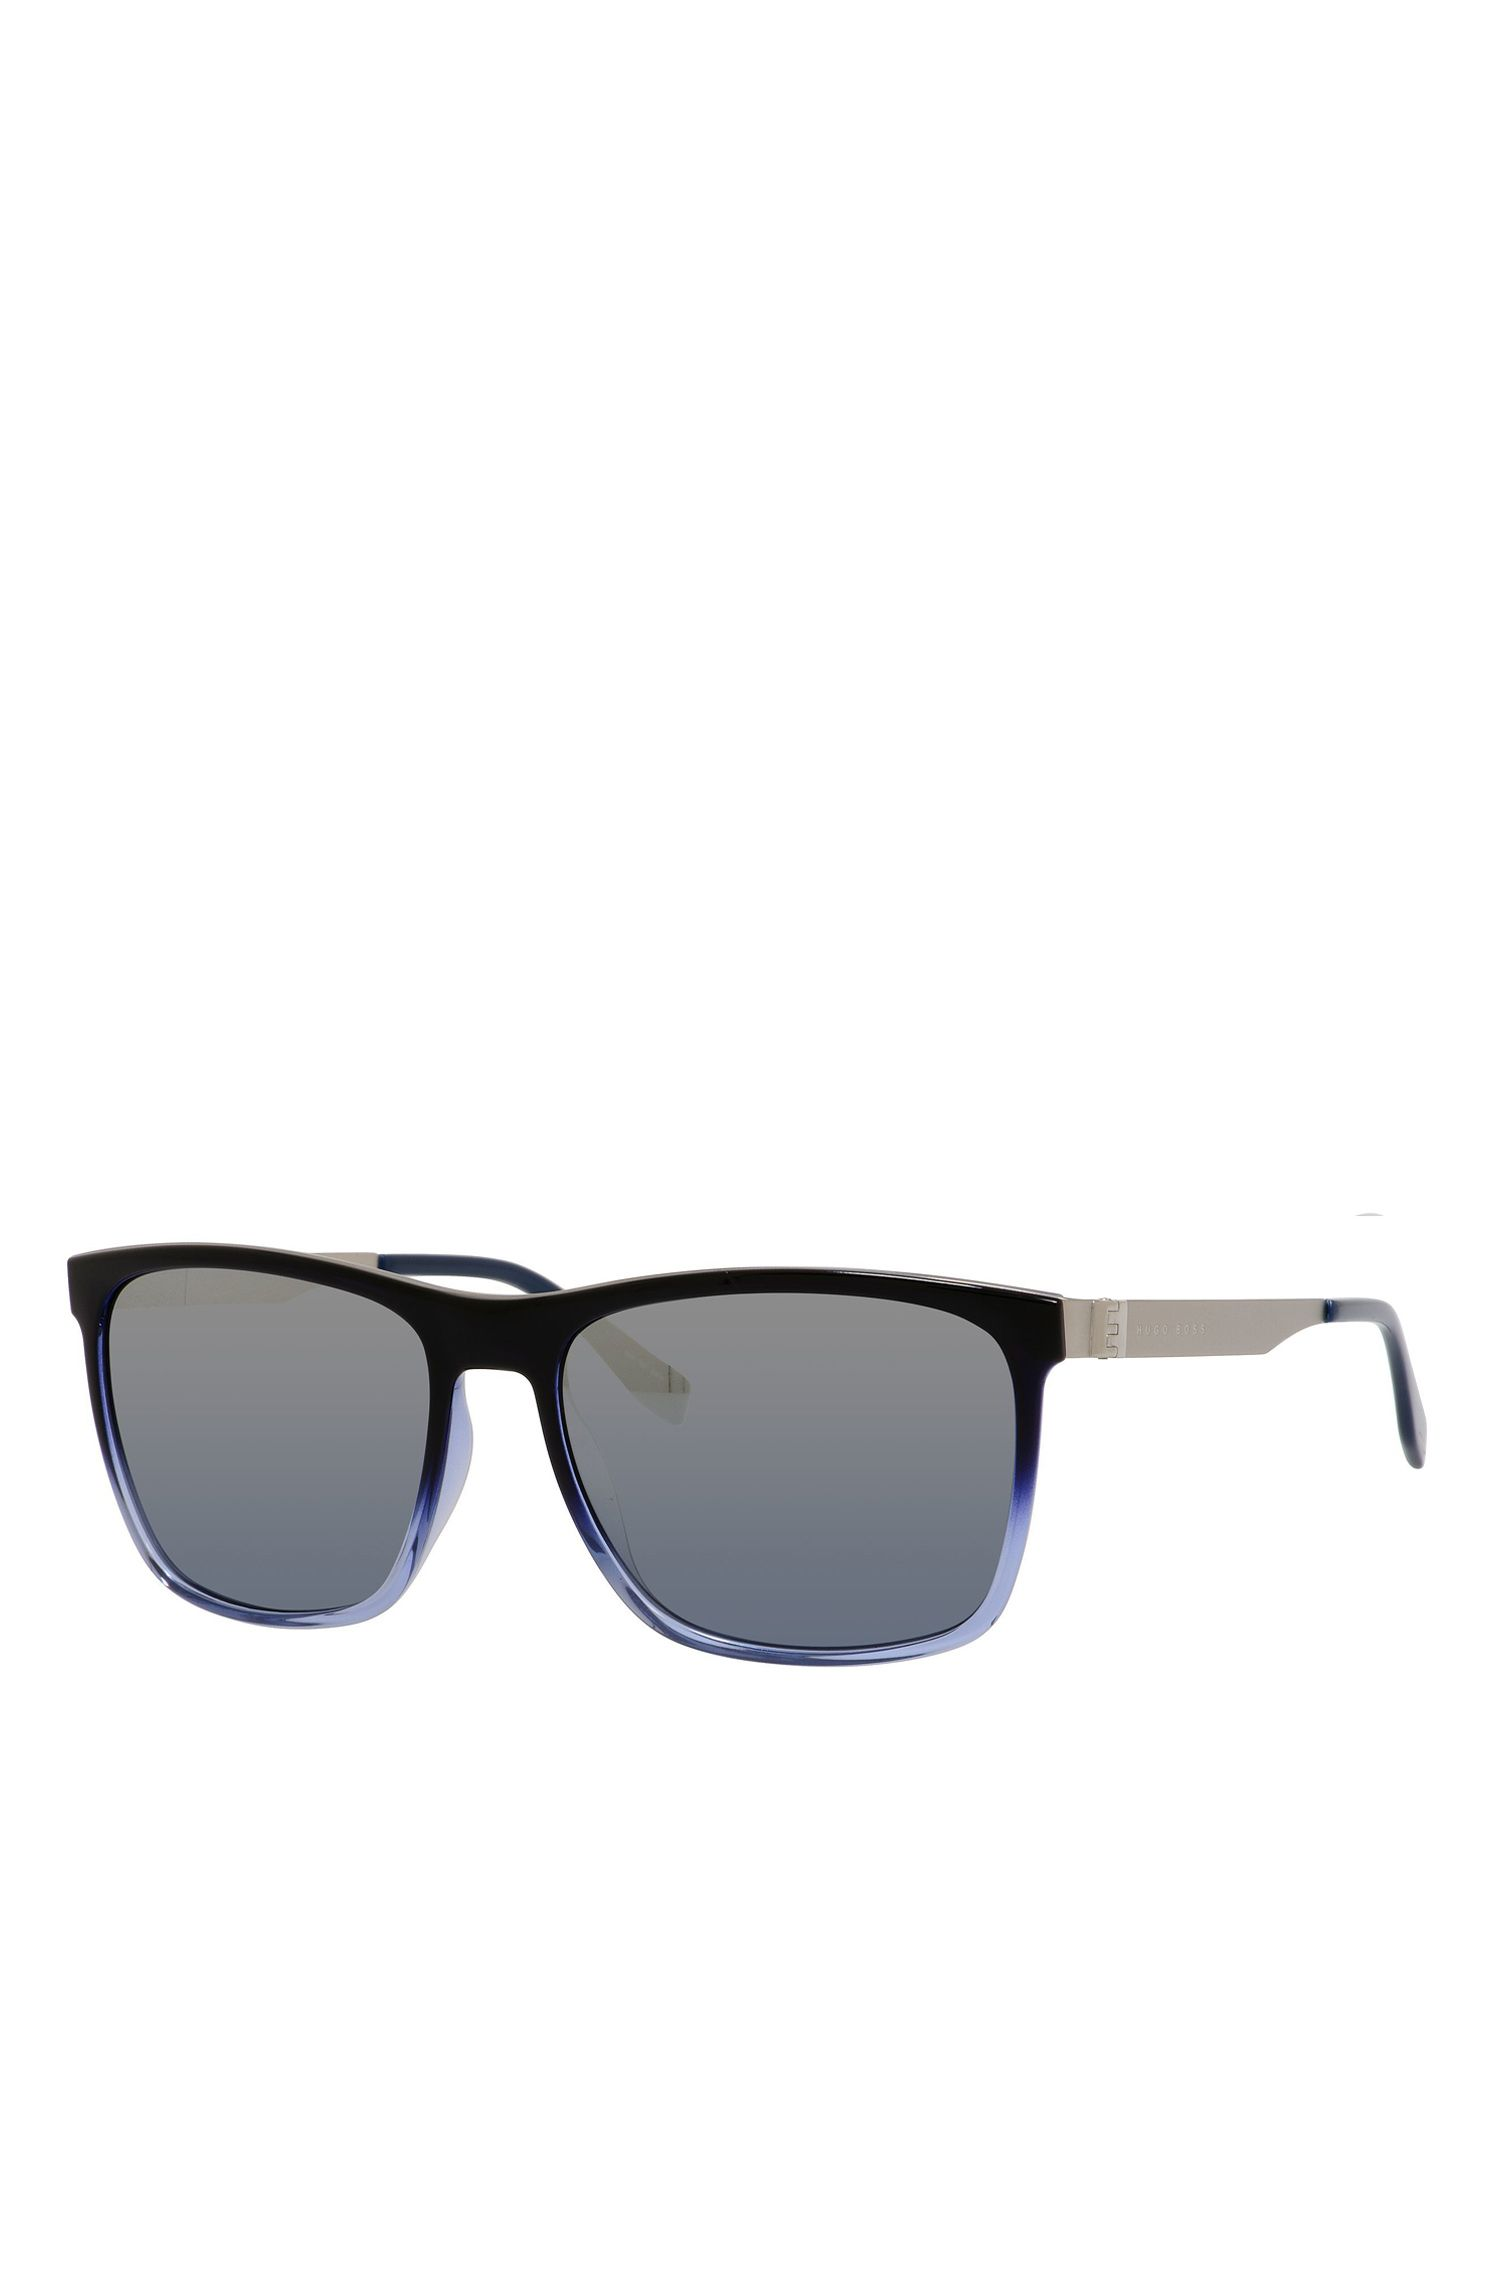 Blue Gradient Lens Rectangular Sunglasses | BOSS 0671S, Assorted-Pre-Pack